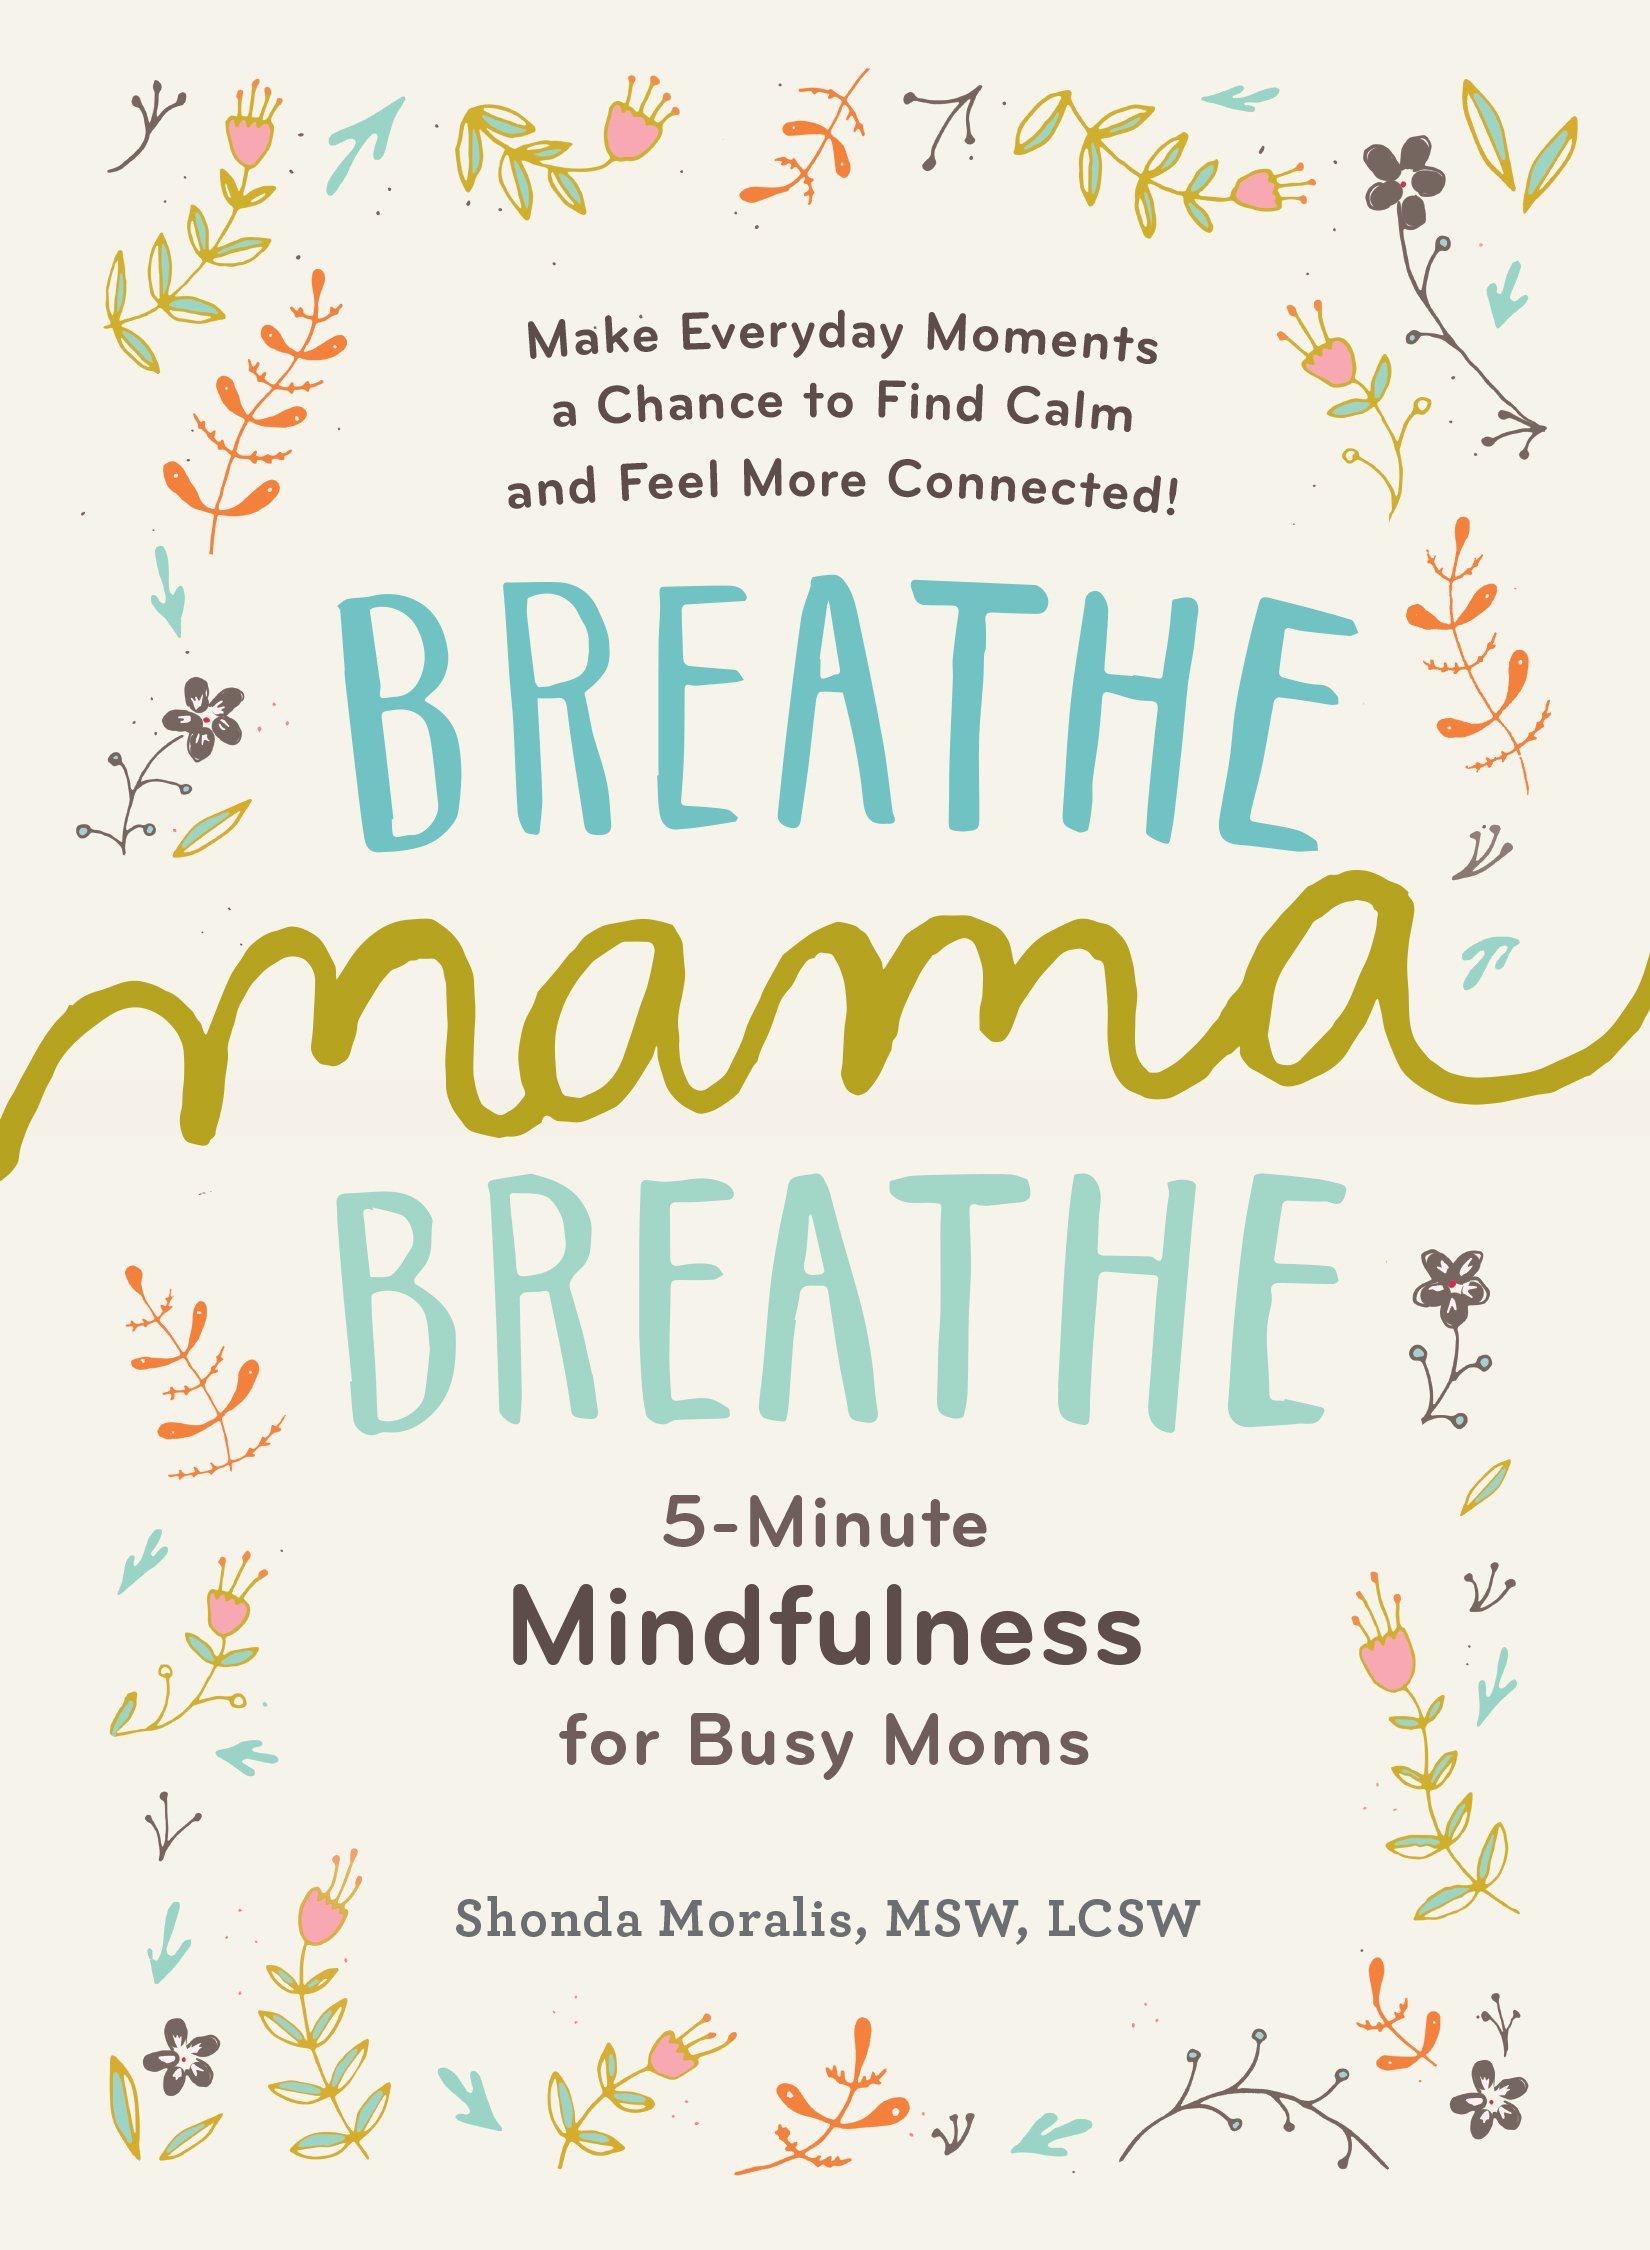 Image OfBreathe, Mama, Breathe: 5-Minute Mindfulness For Busy Moms